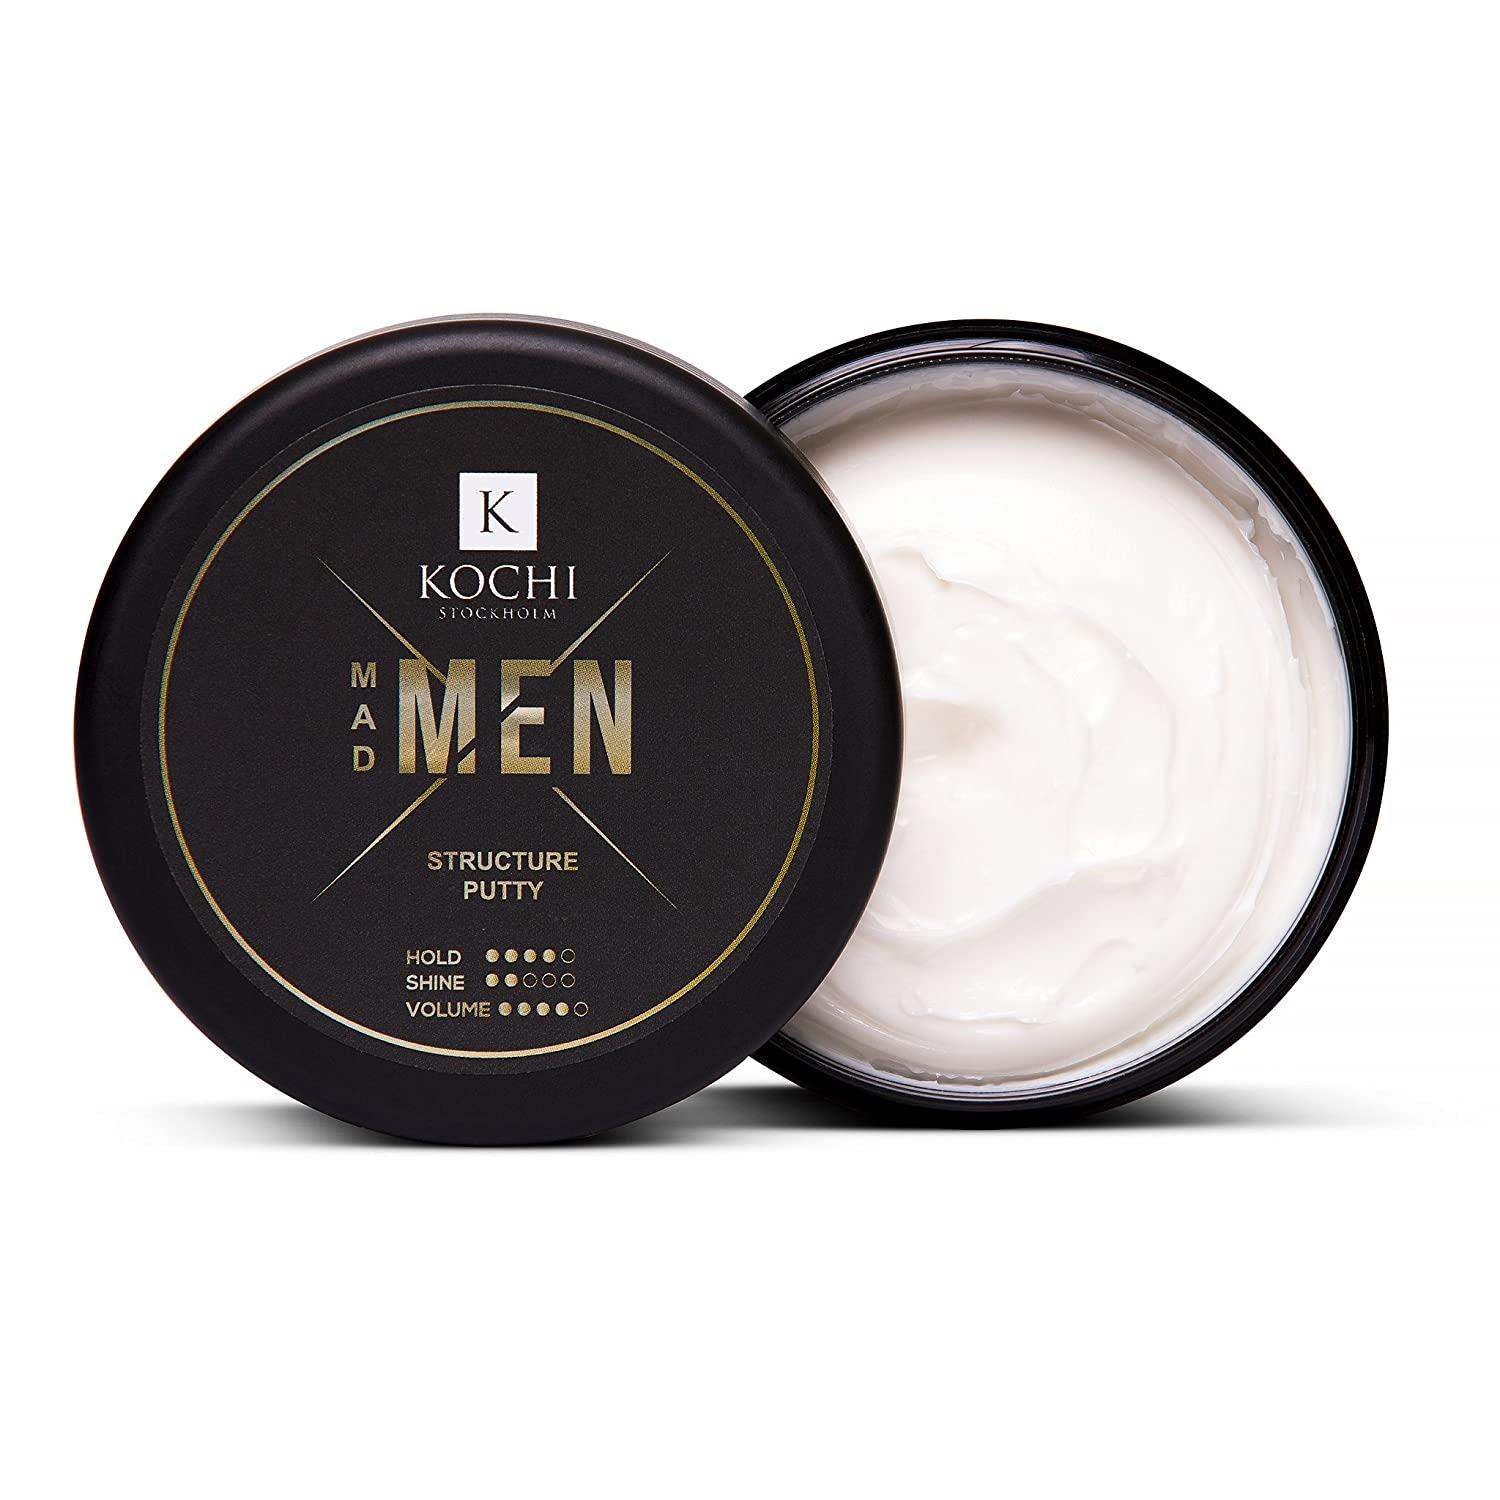 Amazon Com Kochi Stockholm Mad Men Limited Edition Structure Putty Swedish Brand High Shine Volume Soft Hold Hair Styling Products Water Soluble Faraj Beauty